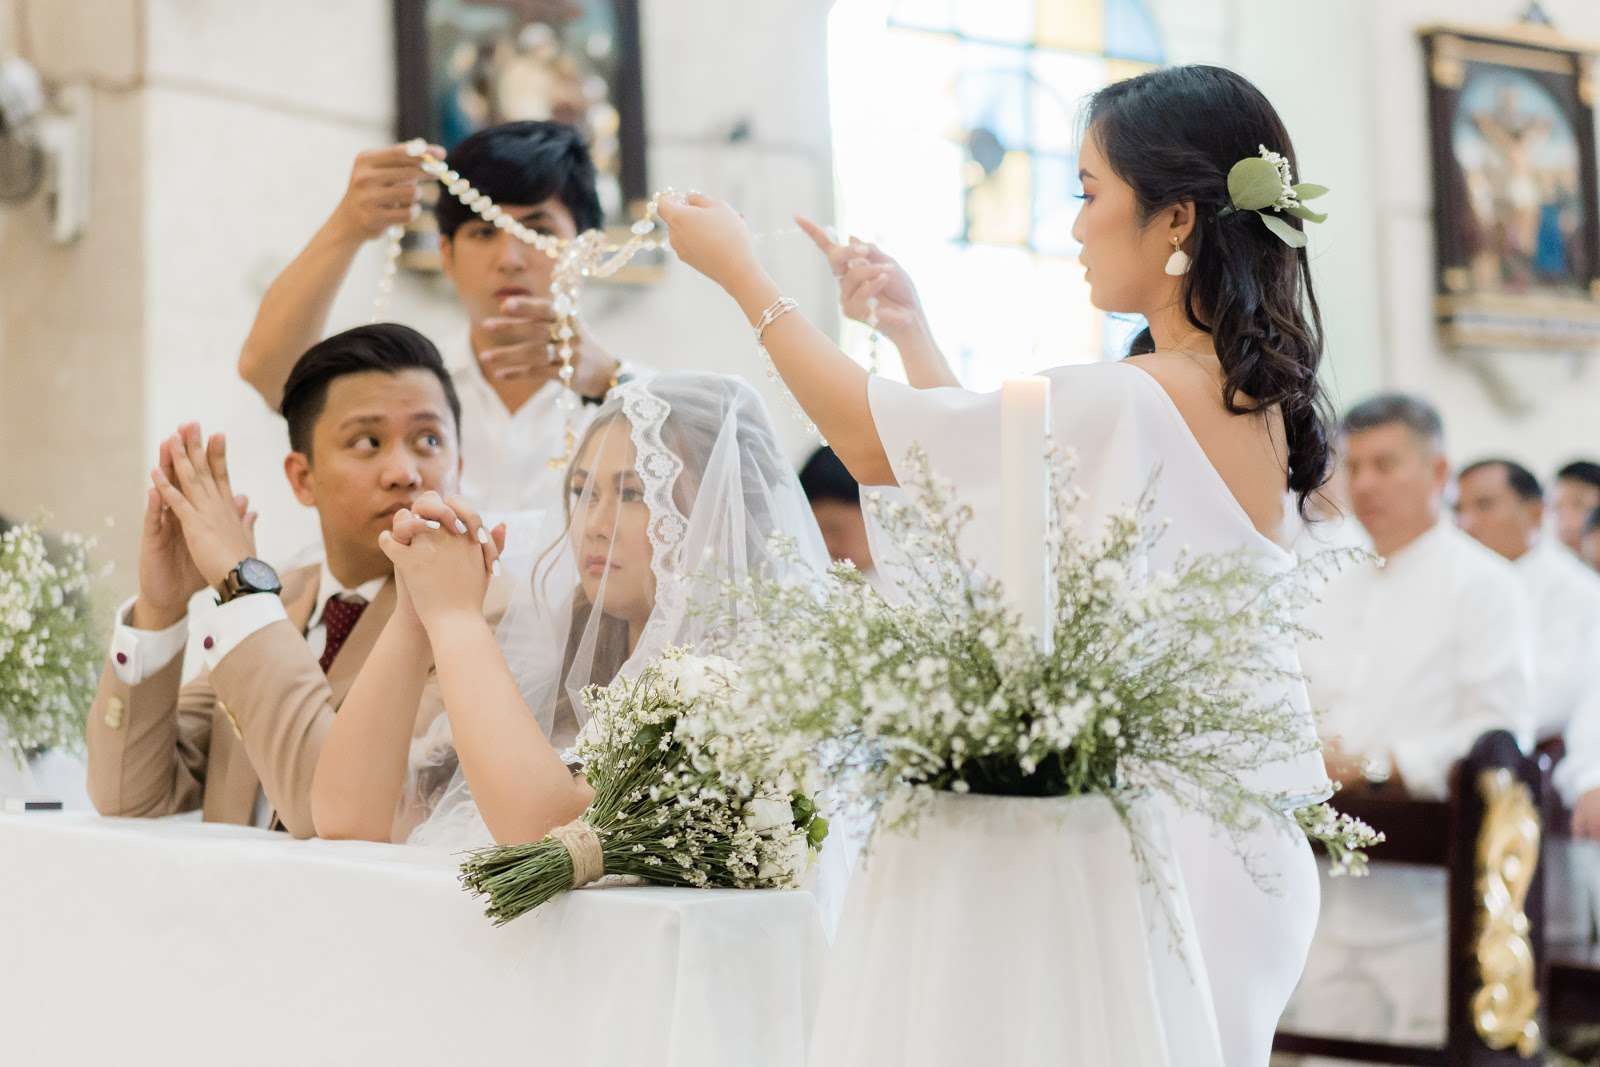 people placing cord over bride and groom